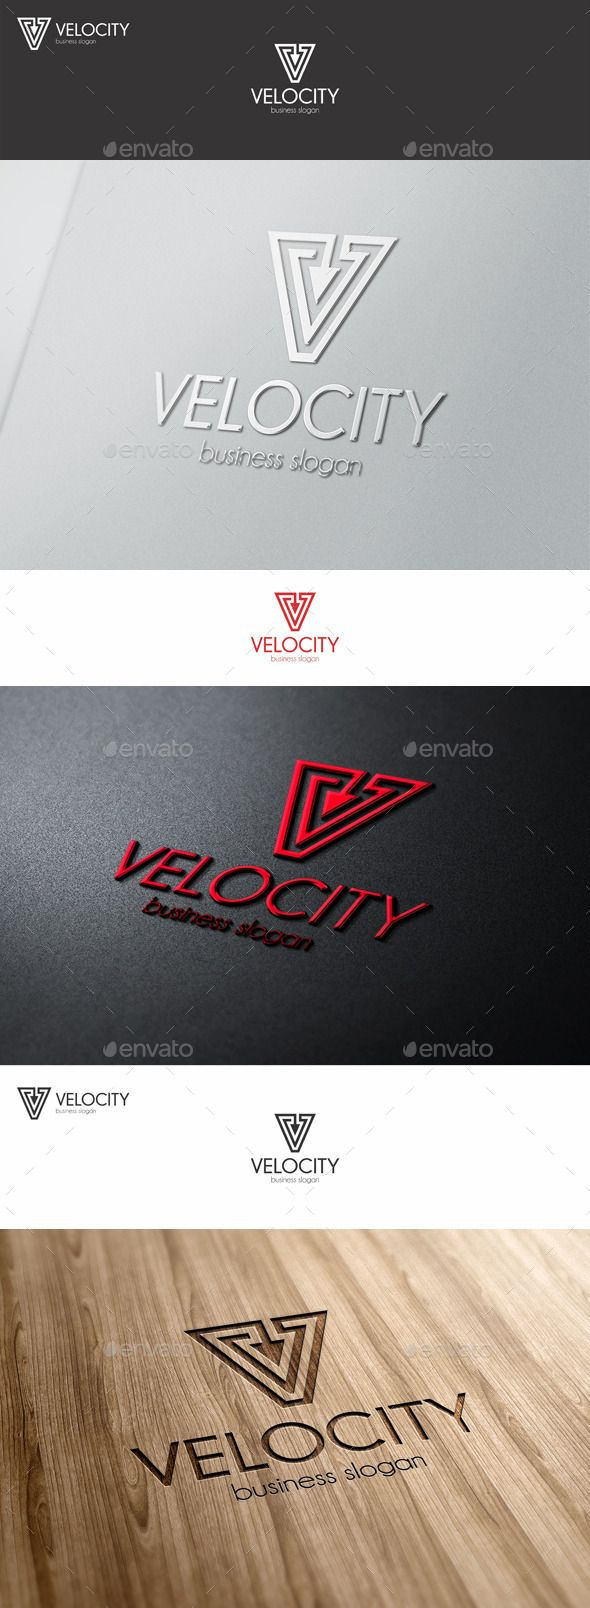 Velocity Vector  V Letter Logo — Vector EPS #easy to edit #simple • Available here → https://graphicriver.net/item/velocity-vector-v-letter-logo/10417484?ref=pxcr